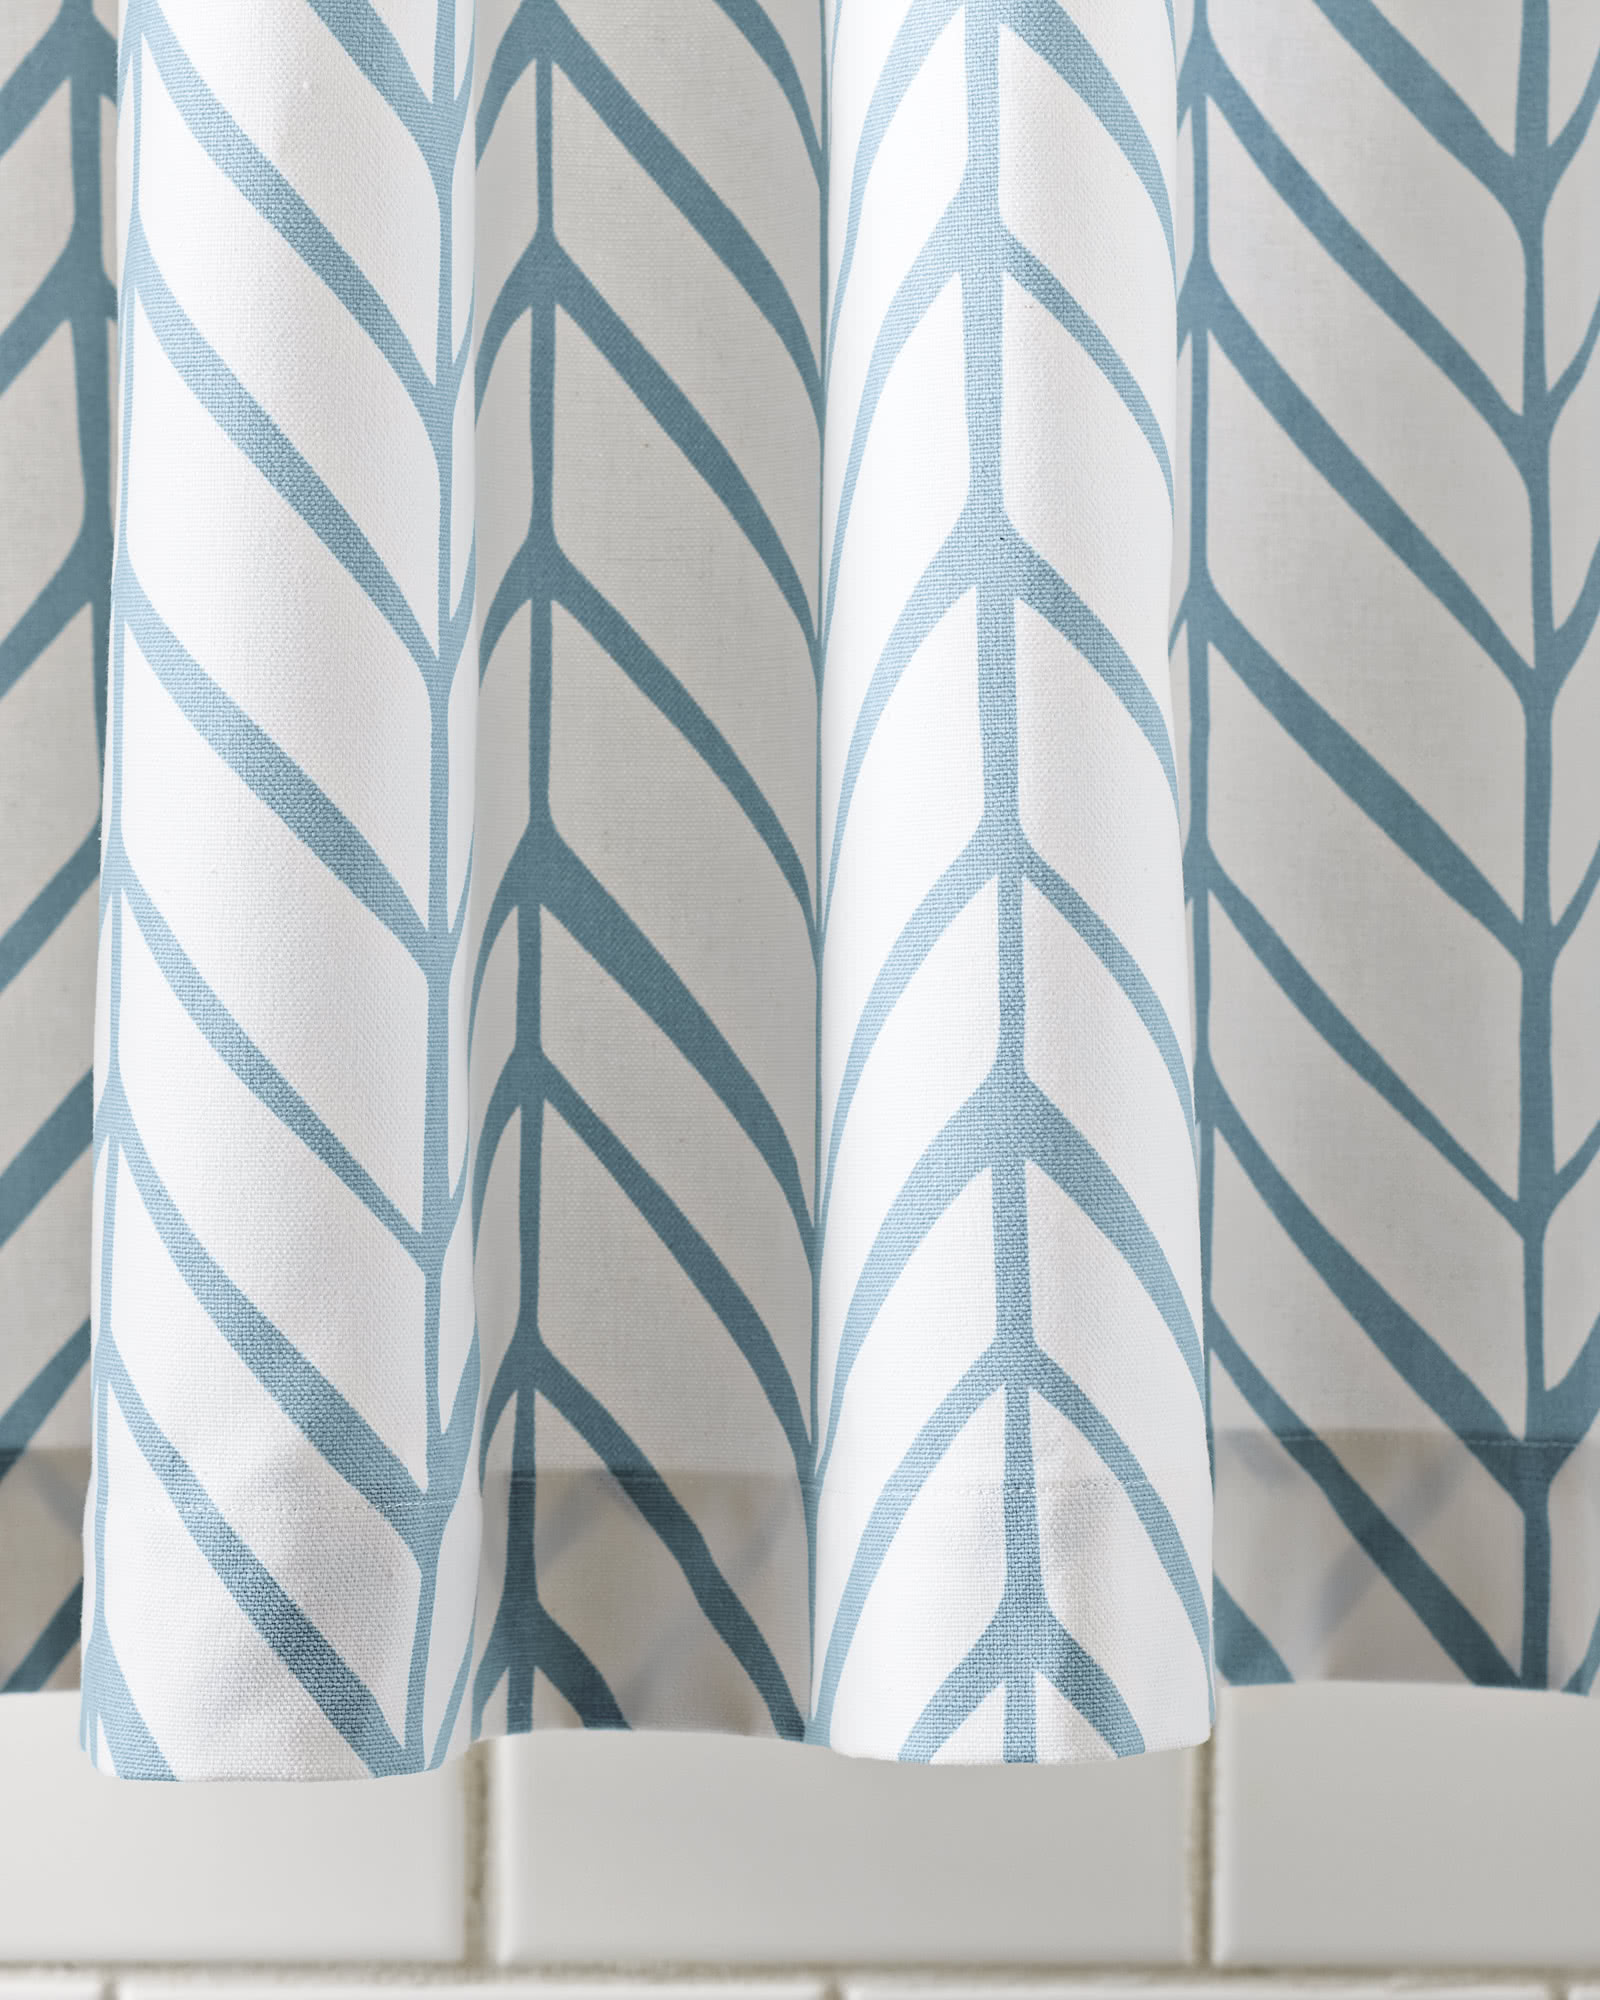 Super Feather Shower Curtain - Serena & Lily SW48